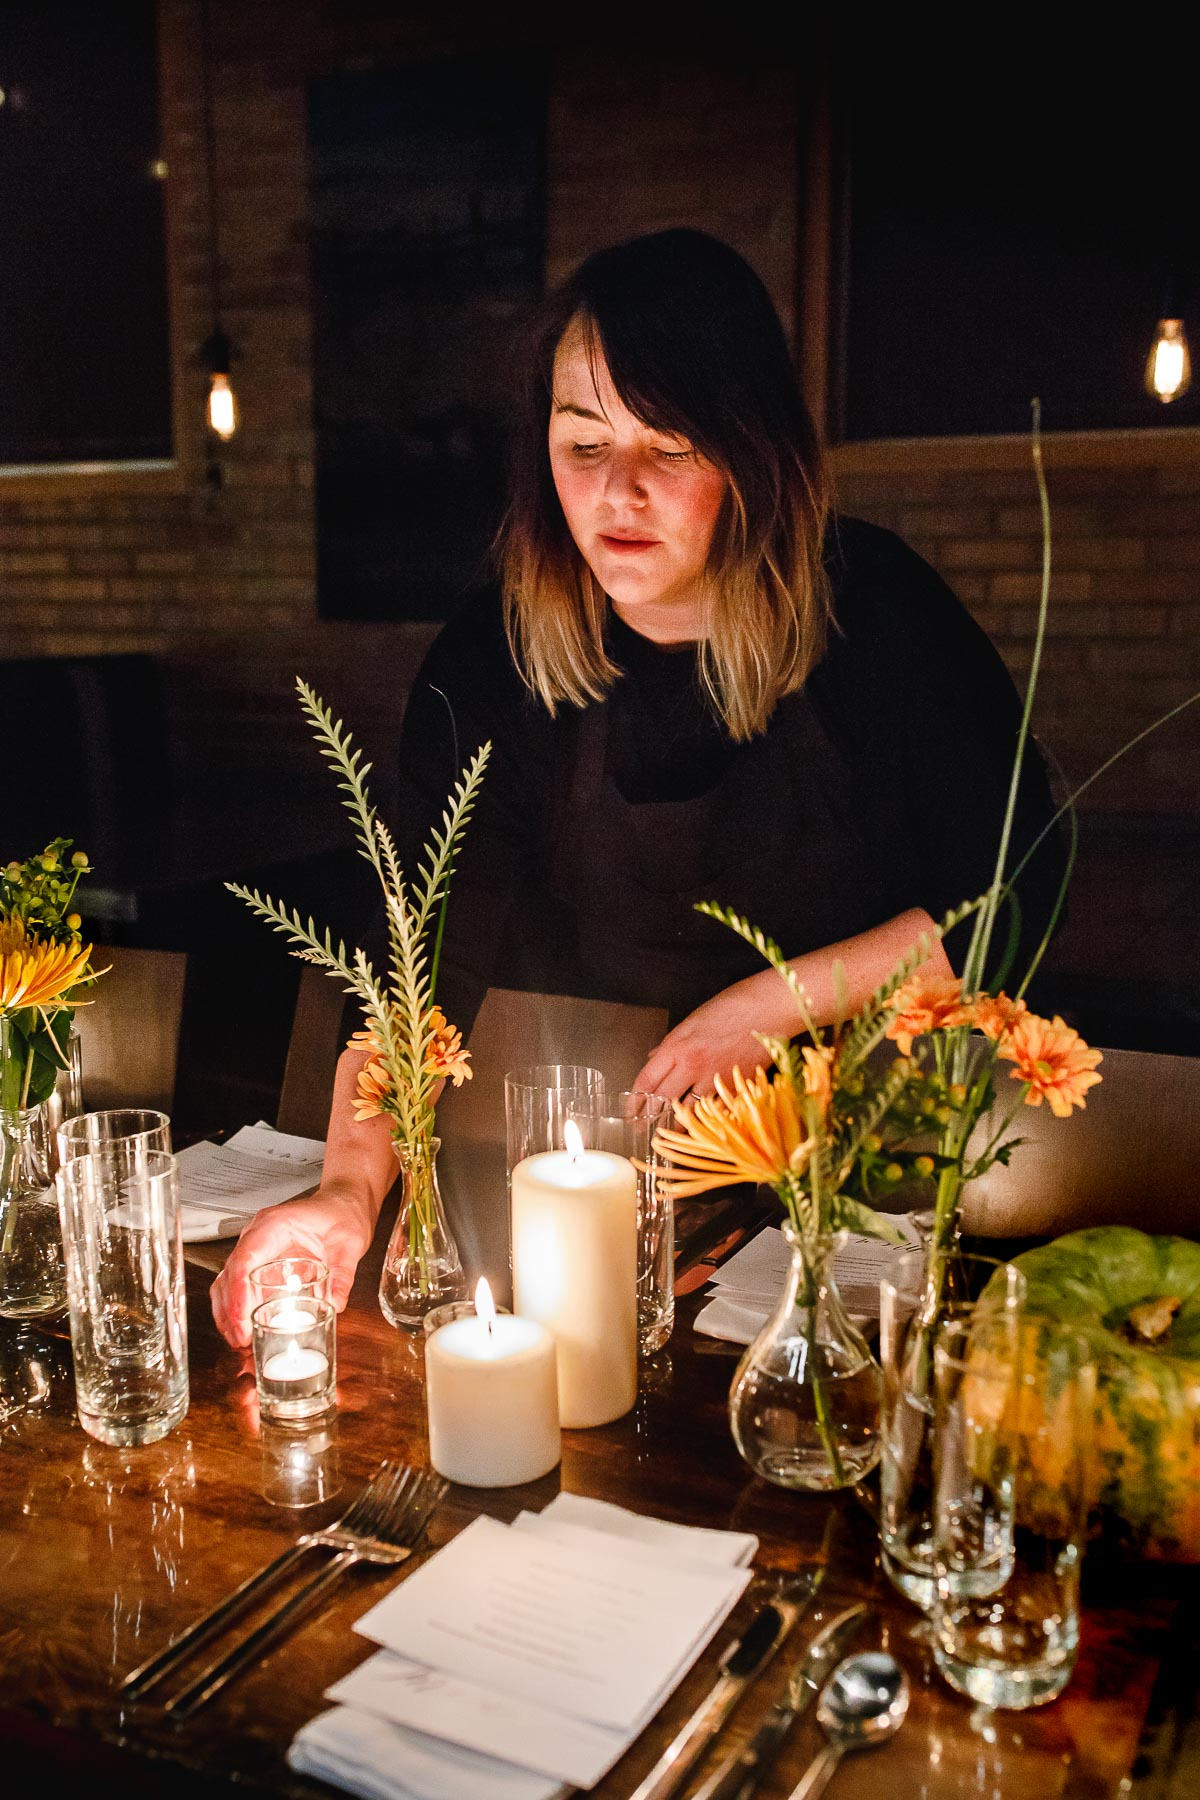 sher castellano at a pop-up dinner